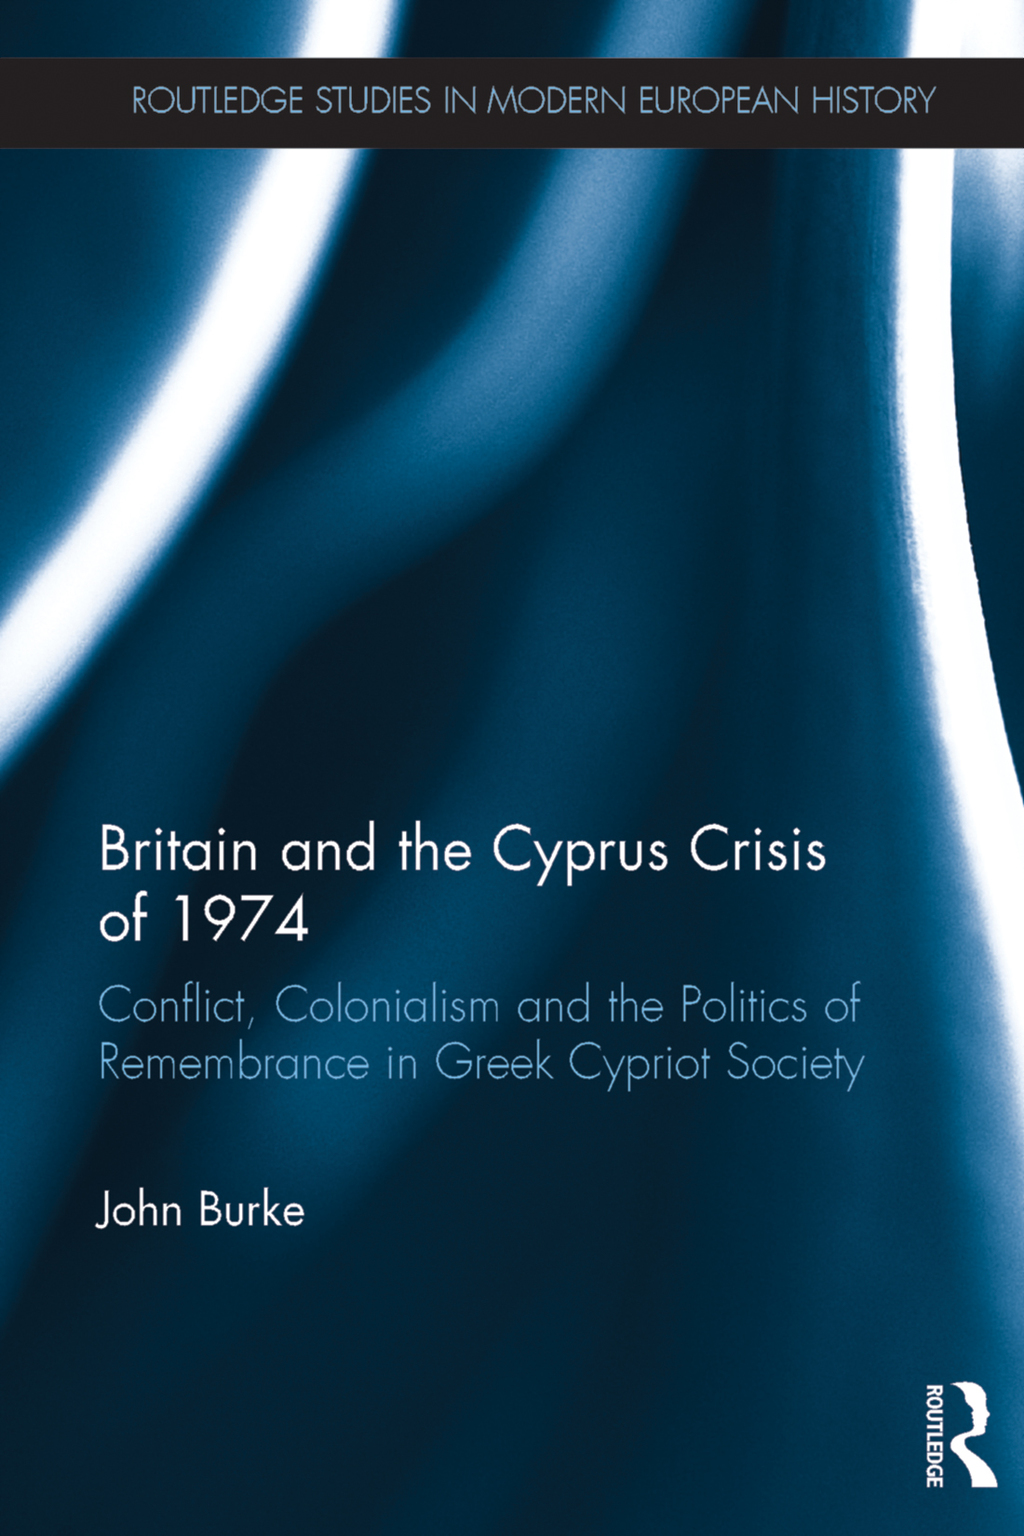 Britain and the Cyprus Crisis of 1974 (eBook Rental)